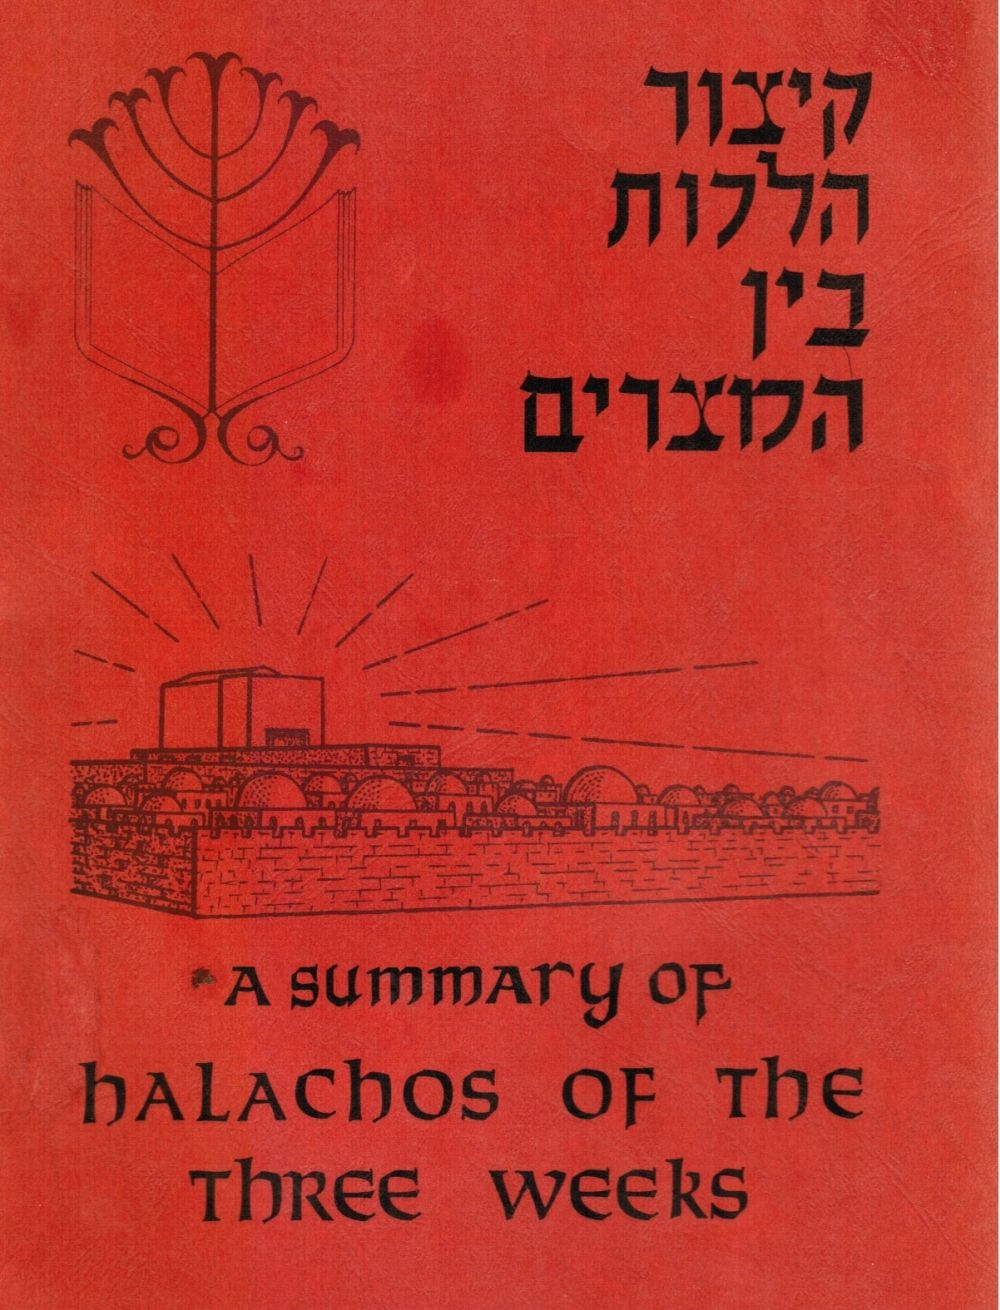 Image for A Summary of Halachos of the Three Weeks Kitsur Halachot Bein Hametzarim